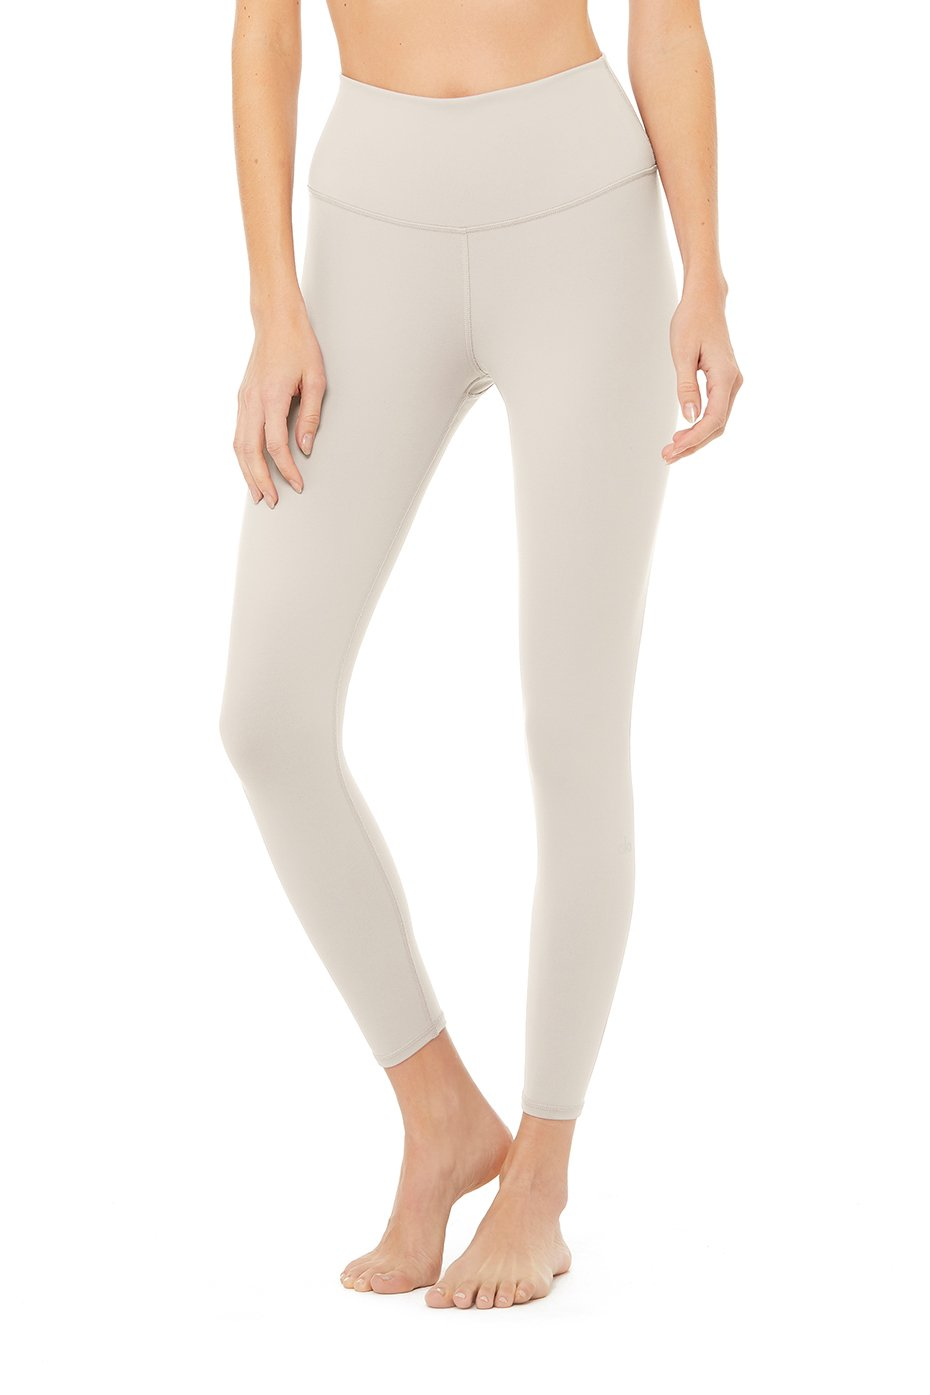 7/8 HIGH-WAIST AIRBRUSH LEGGING by Alo Yoga, available on aloyoga.com for $79 Kylie Jenner Pants Exact Product